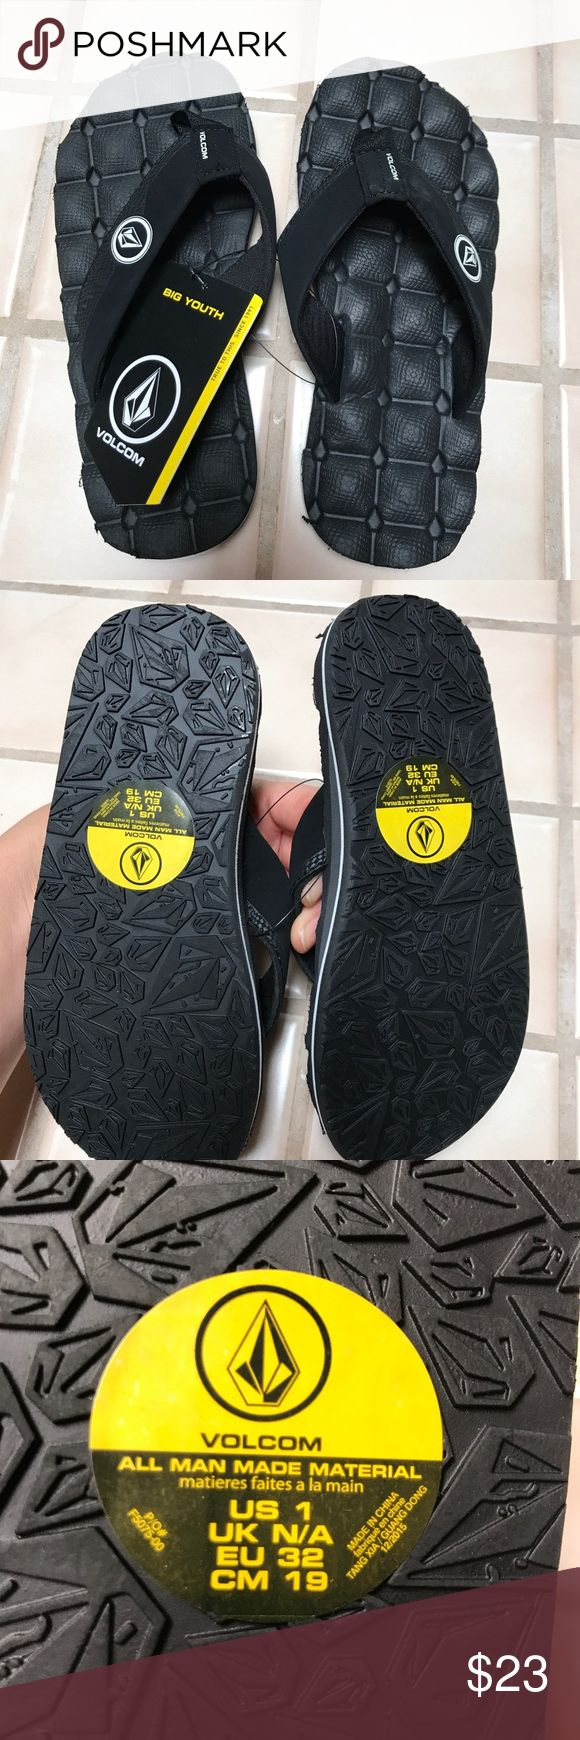 Volcom boy flip flops New black Volcom sandals Volcom Shoes Sandals & Flip Flops